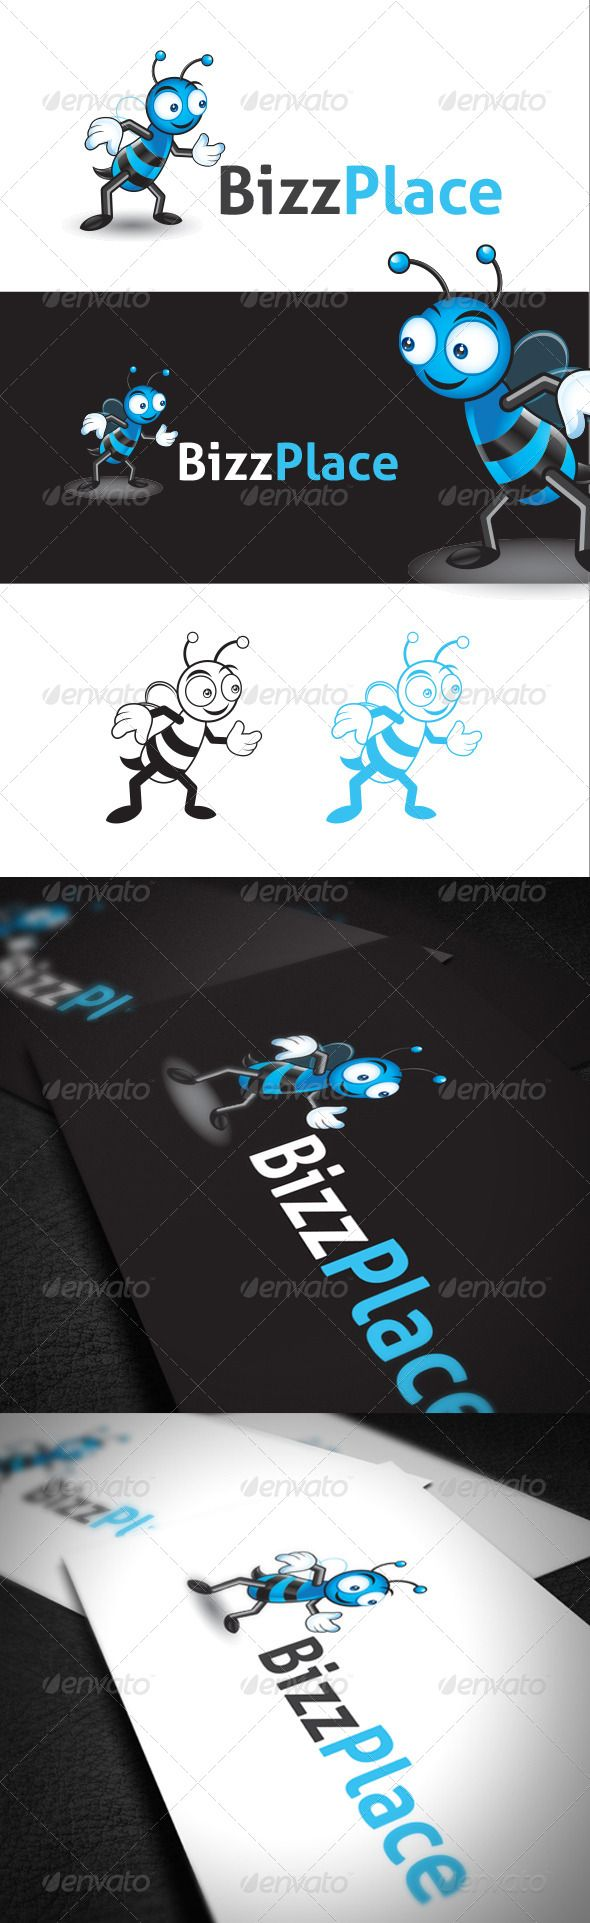 Character Design Bee in Vector Format — Photoshop PSD #clip #web • Available here → https://graphicriver.net/item/character-design-bee-in-vector-format/6799207?ref=pxcr